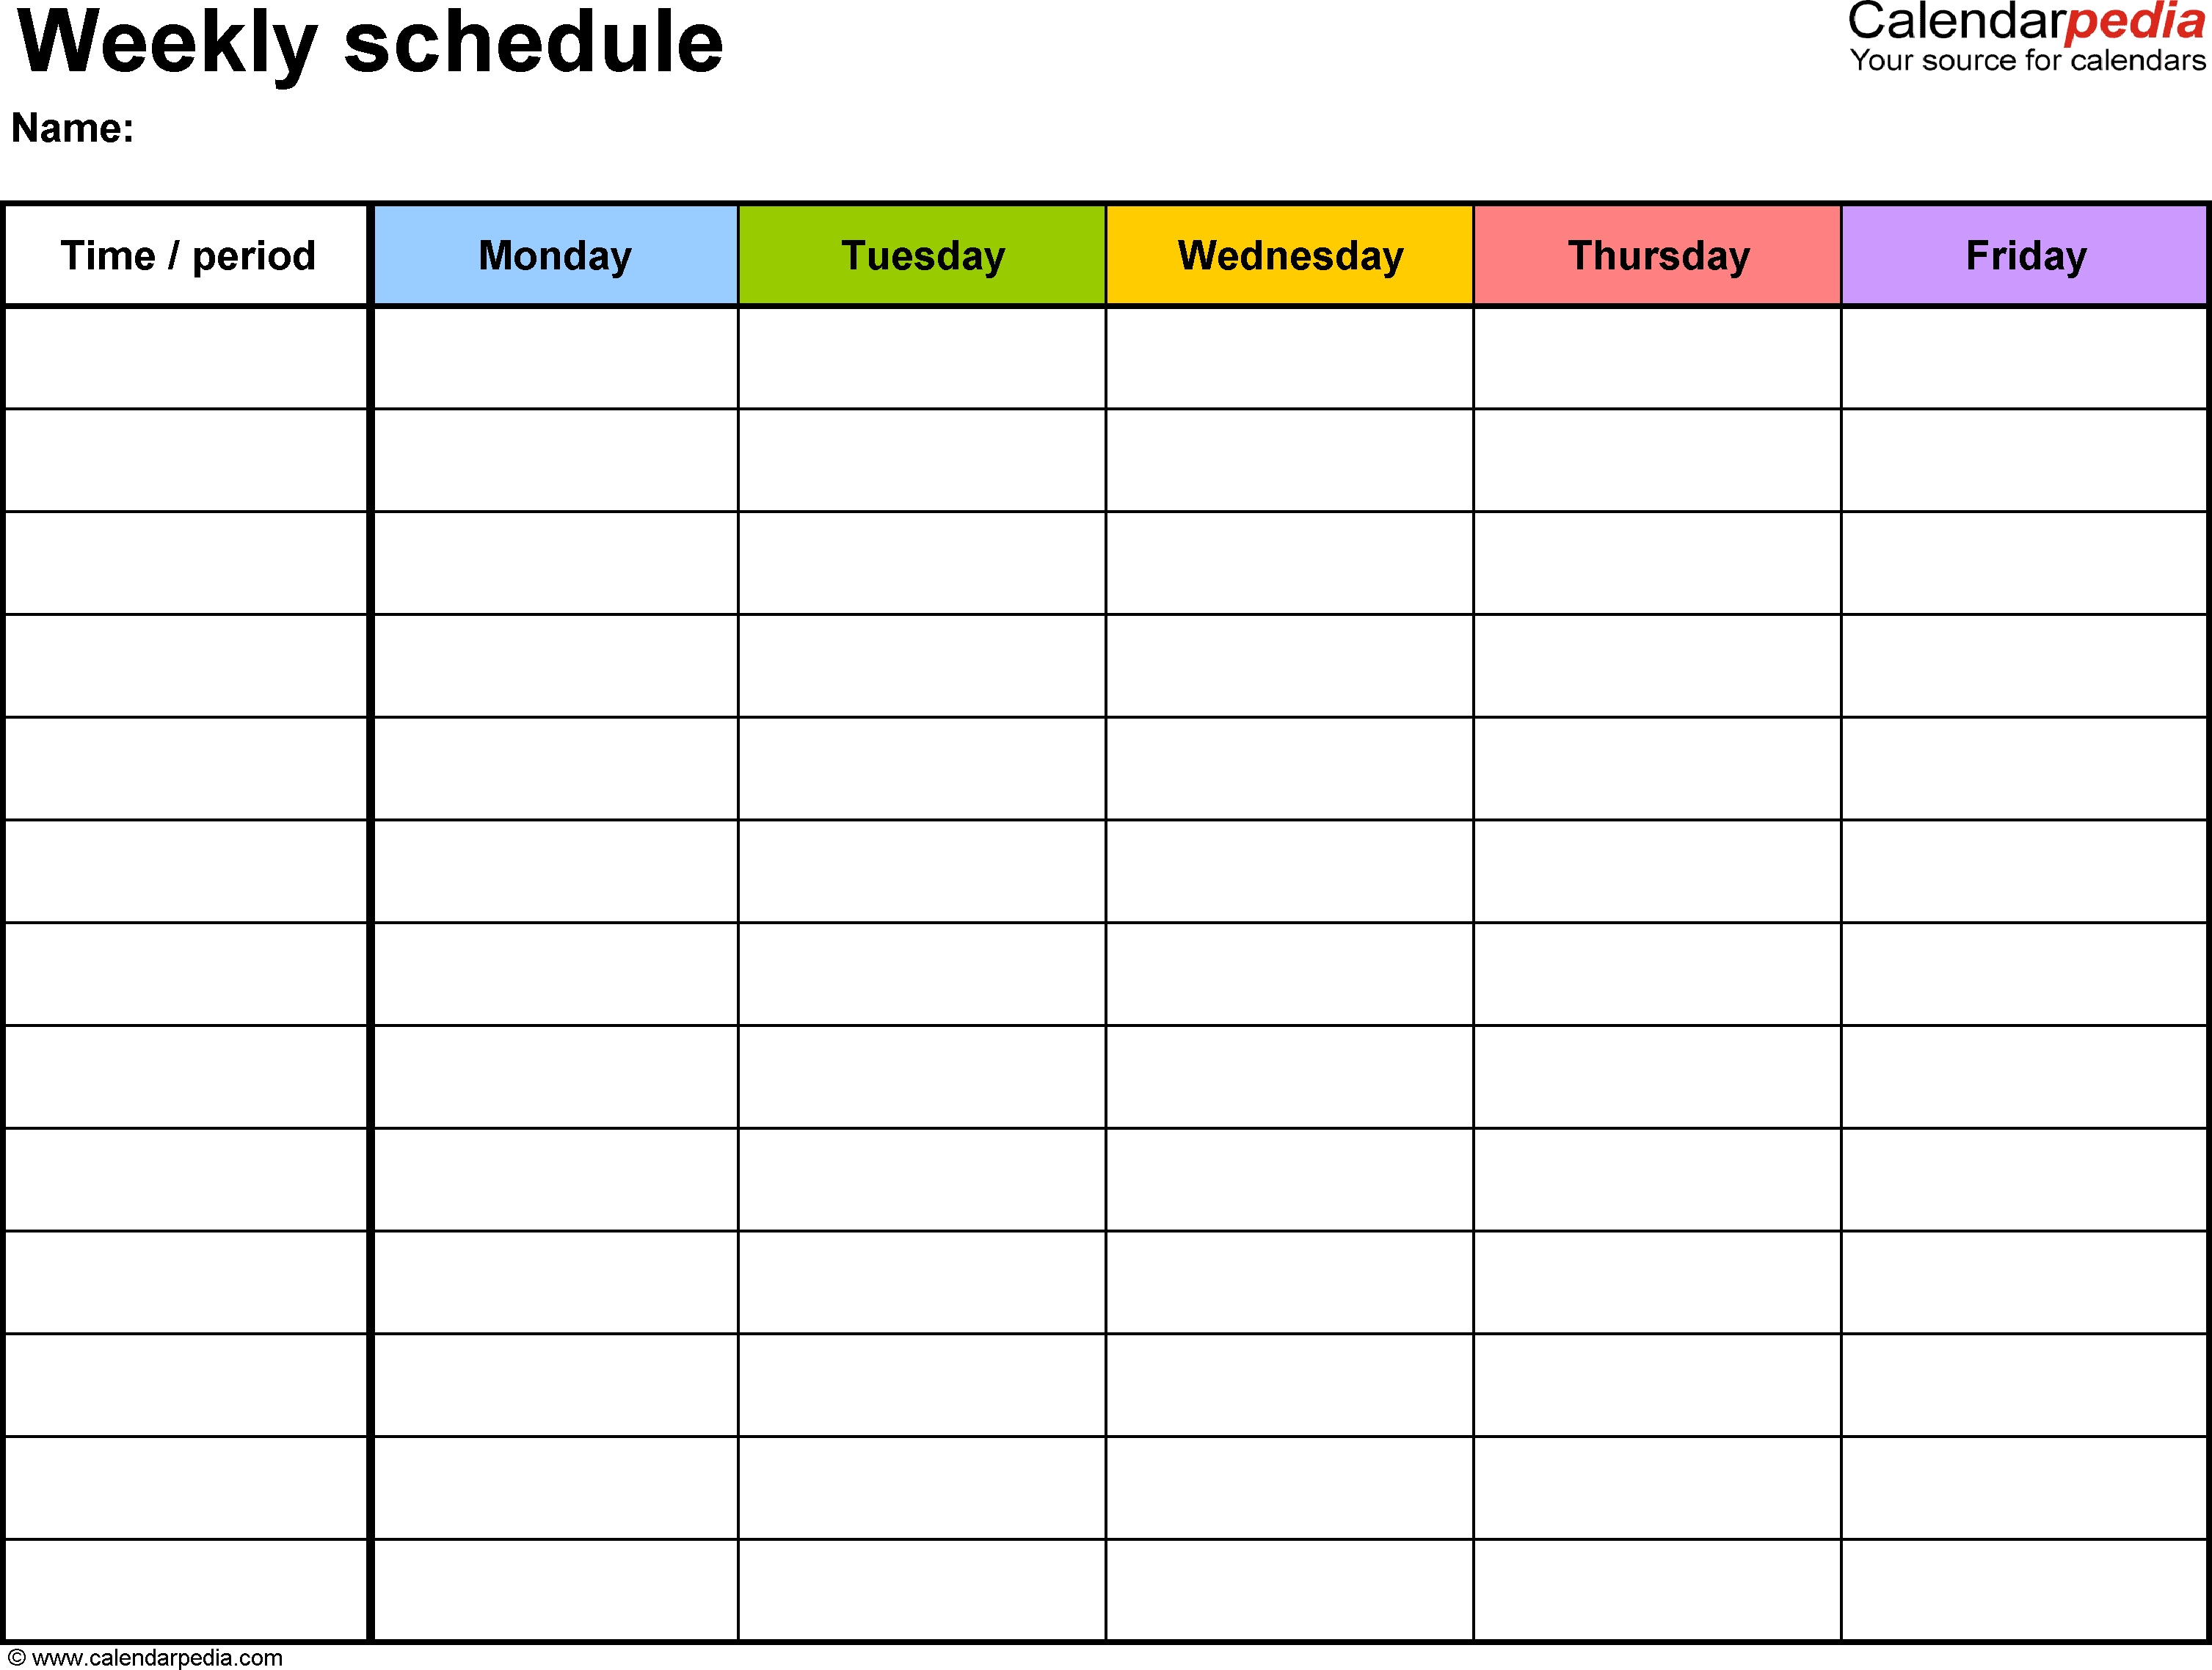 Free Weekly Schedule Templates For Word - 18 Templates with regard to Printable 5 Day Monthly Calendar